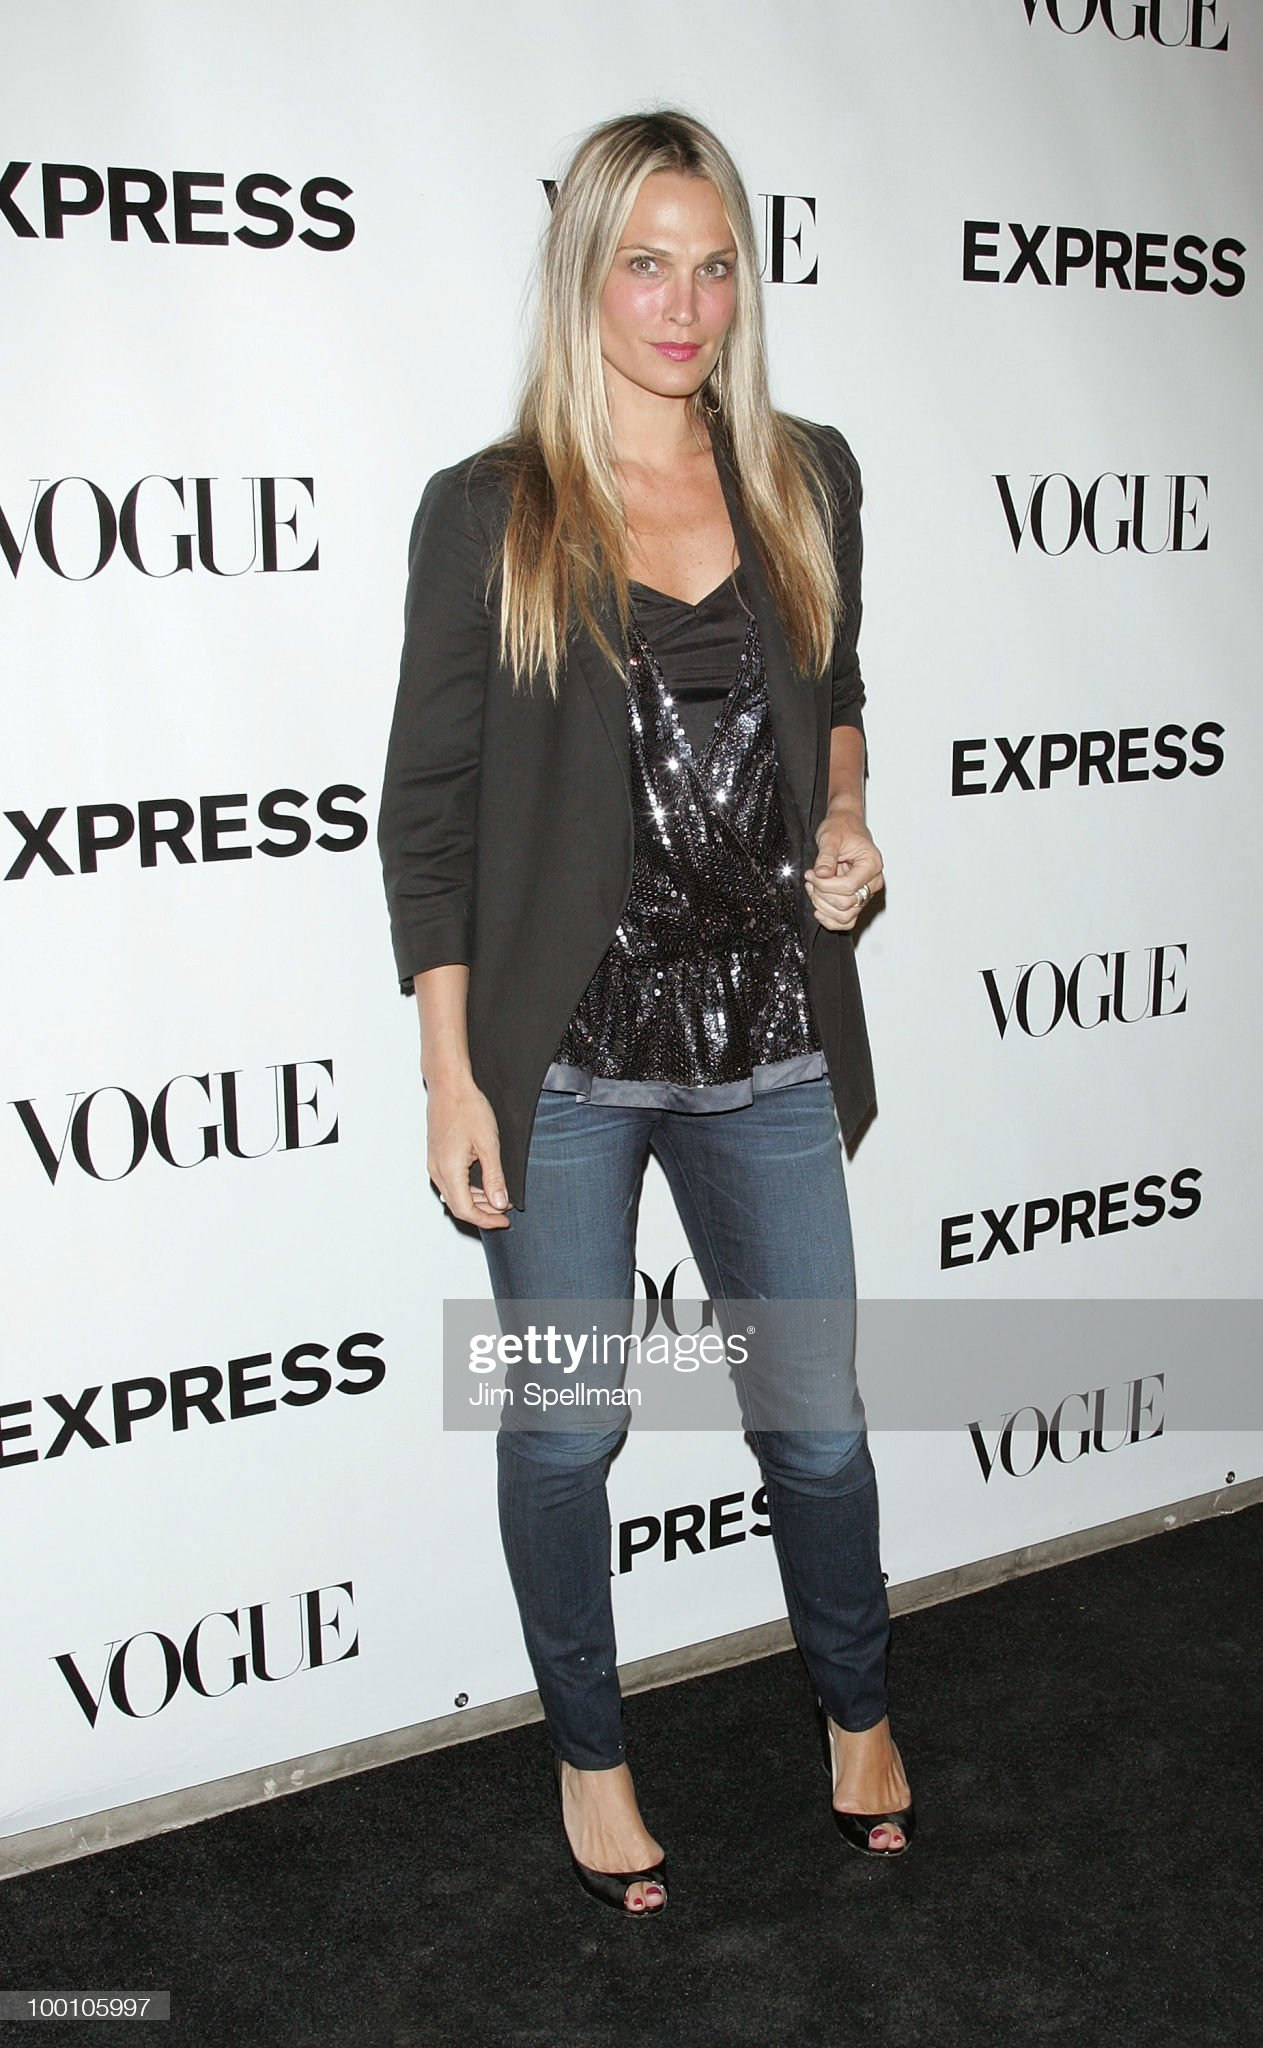 ¿Cuánto mide Molly Sims? - Real height Actress-molly-sims-attends-the-express-30th-anniversary-party-at-on-picture-id100105997?s=2048x2048